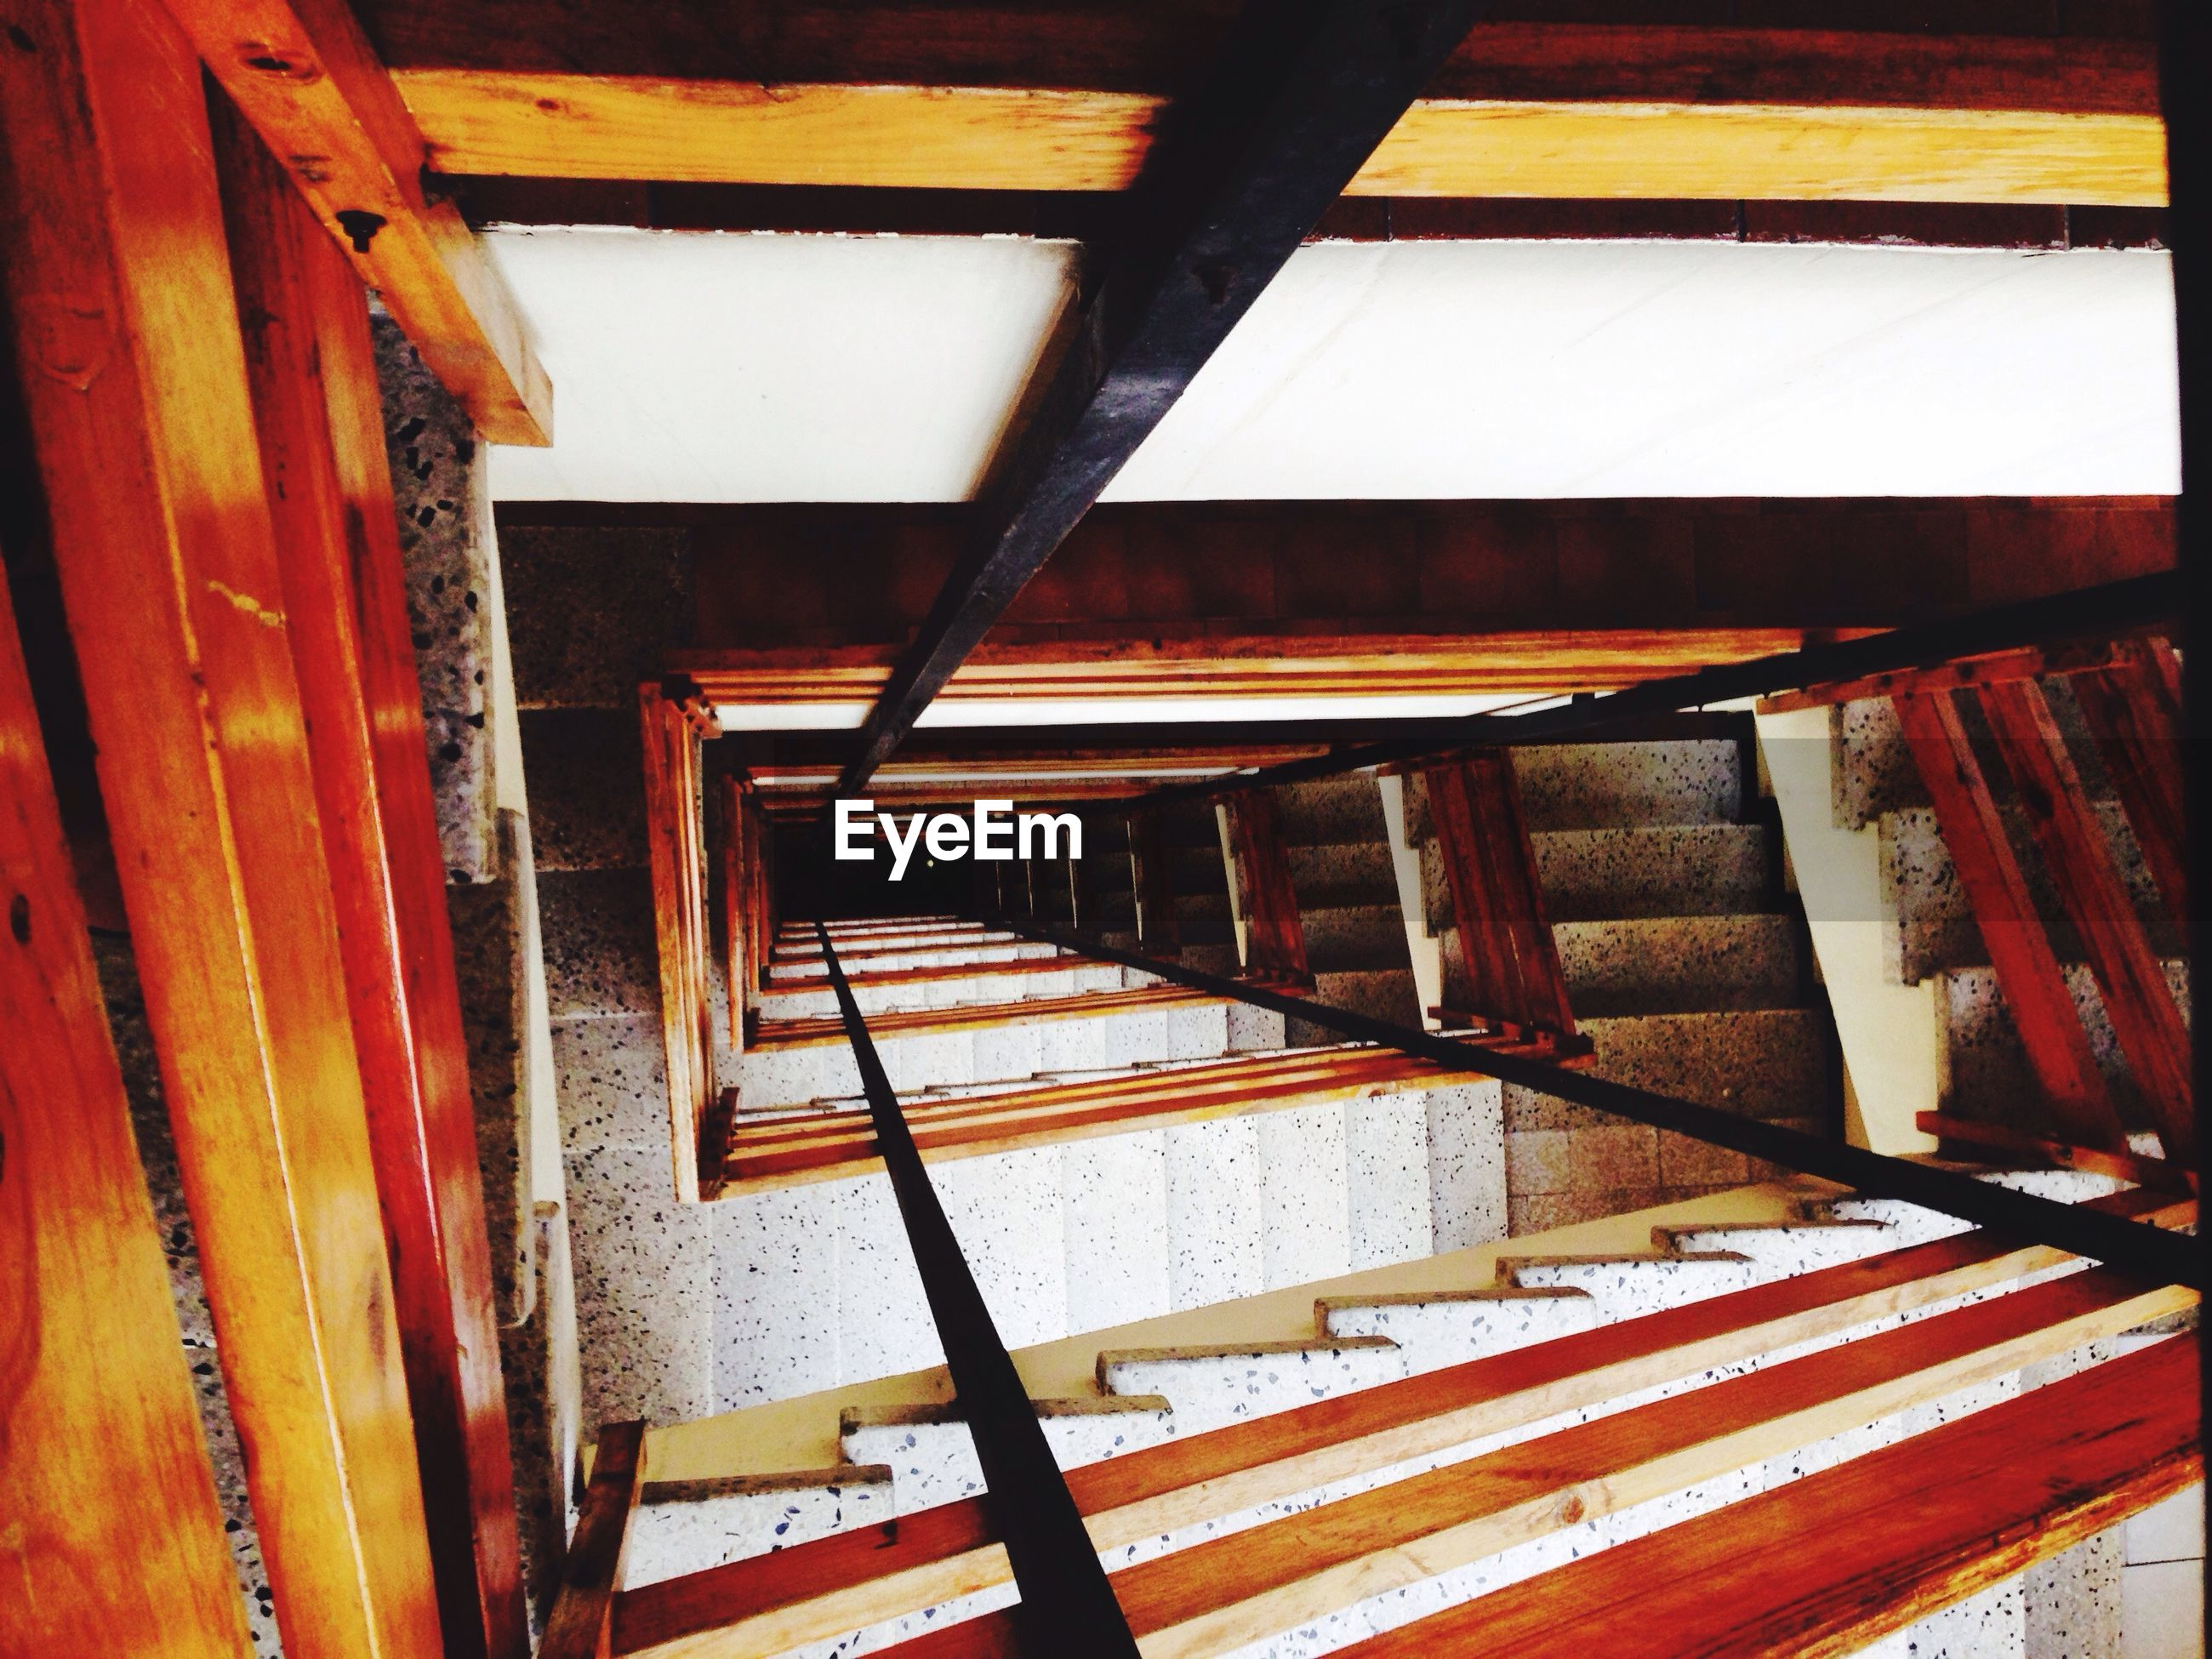 indoors, built structure, architecture, wood - material, red, house, steps, wooden, no people, day, window, wood, railing, wall - building feature, orange color, building exterior, high angle view, sunlight, close-up, old